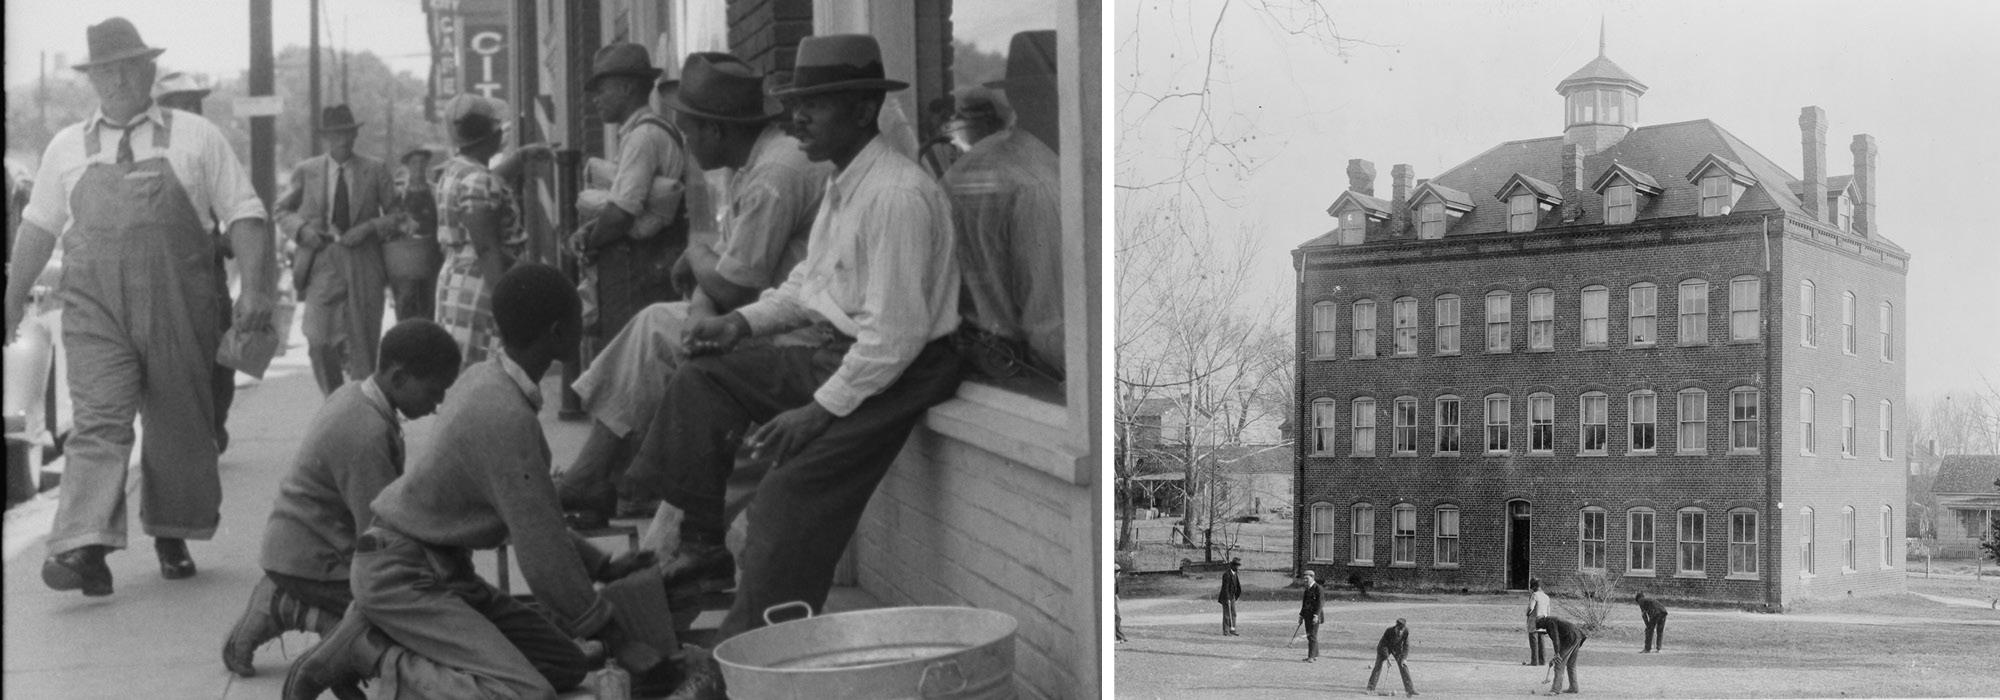 Raleigh-Durham's African American Cultural Landscapes | The